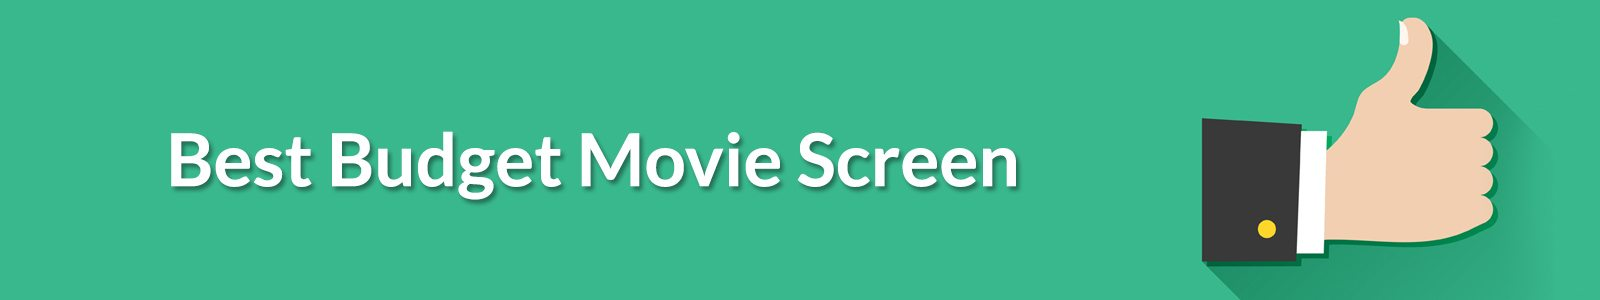 Best Budget Movie Screen